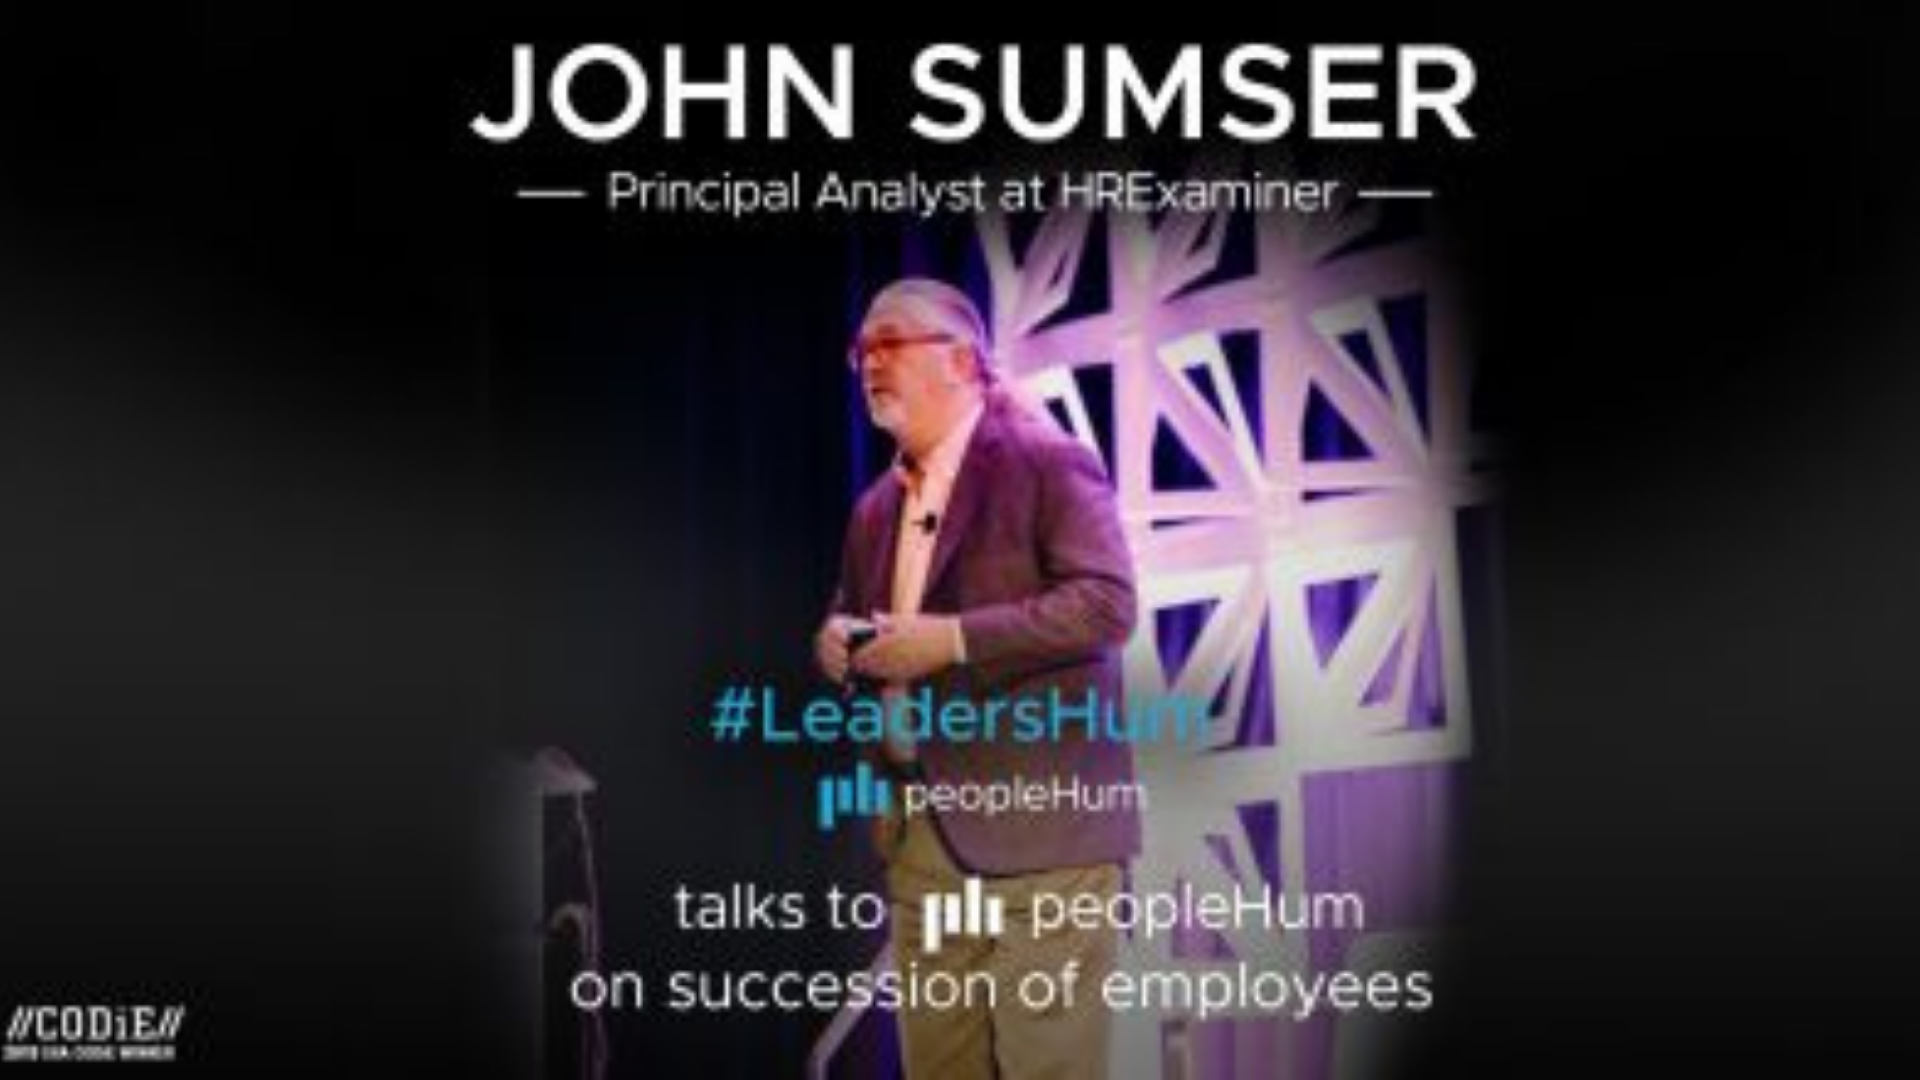 A shift in the future of Work - John Sumser [Interview]